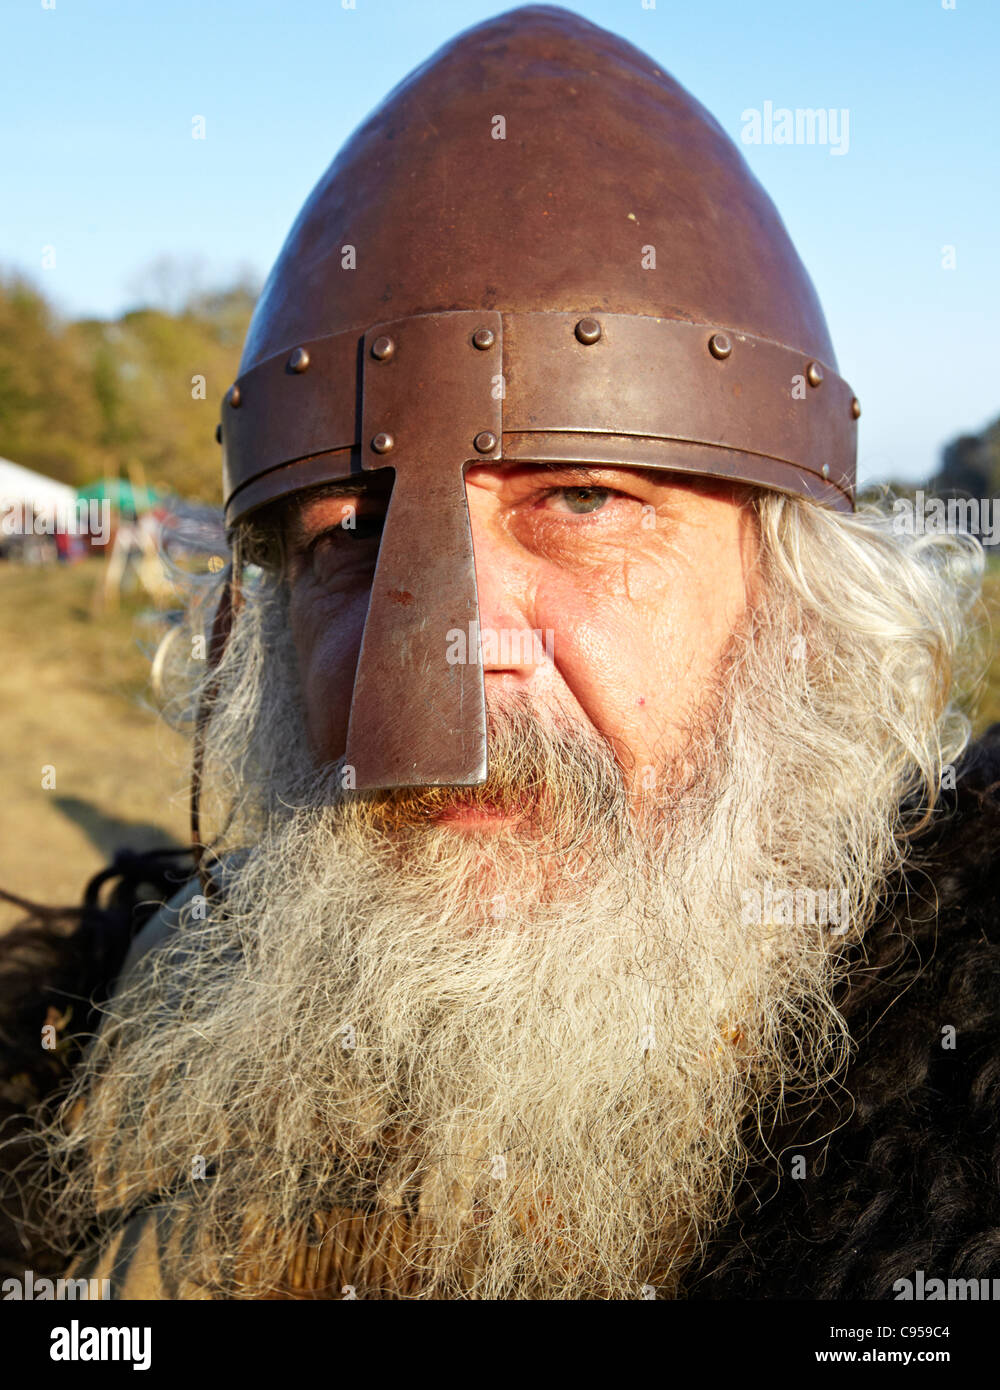 Irish Warrior Battle East Sussex UK - Stock Image